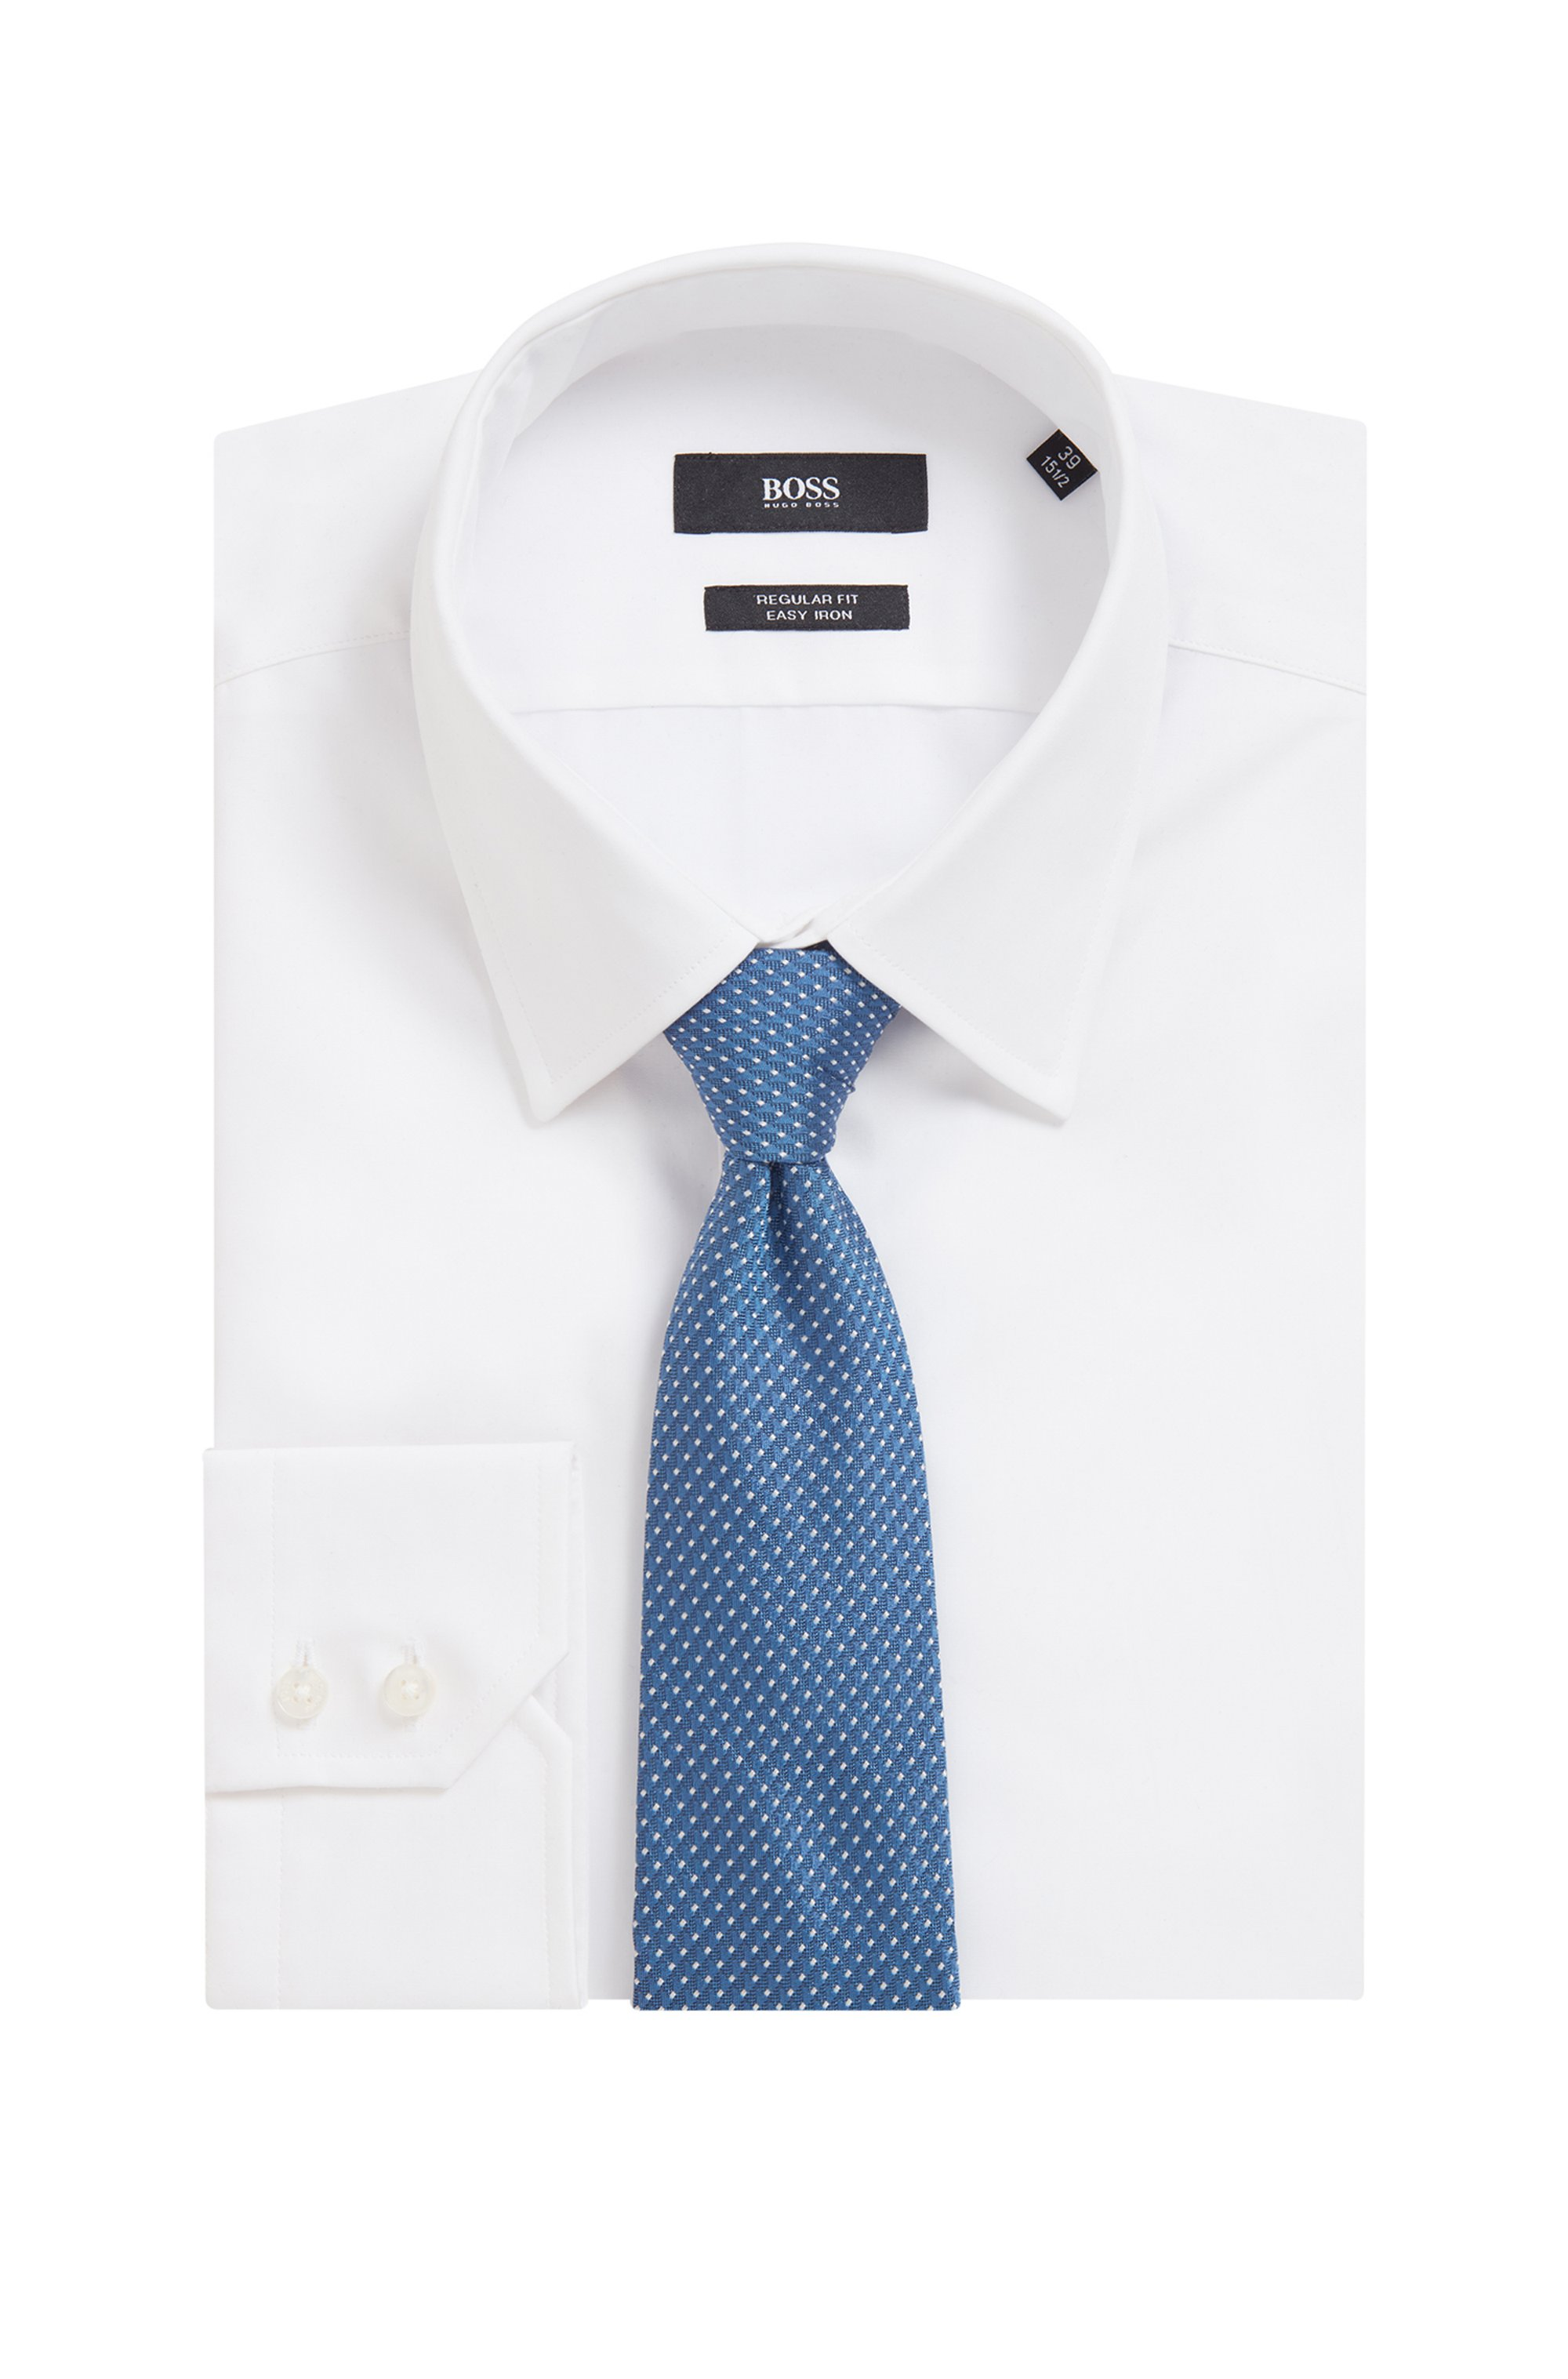 Tie in silk jacquard with micro pattern